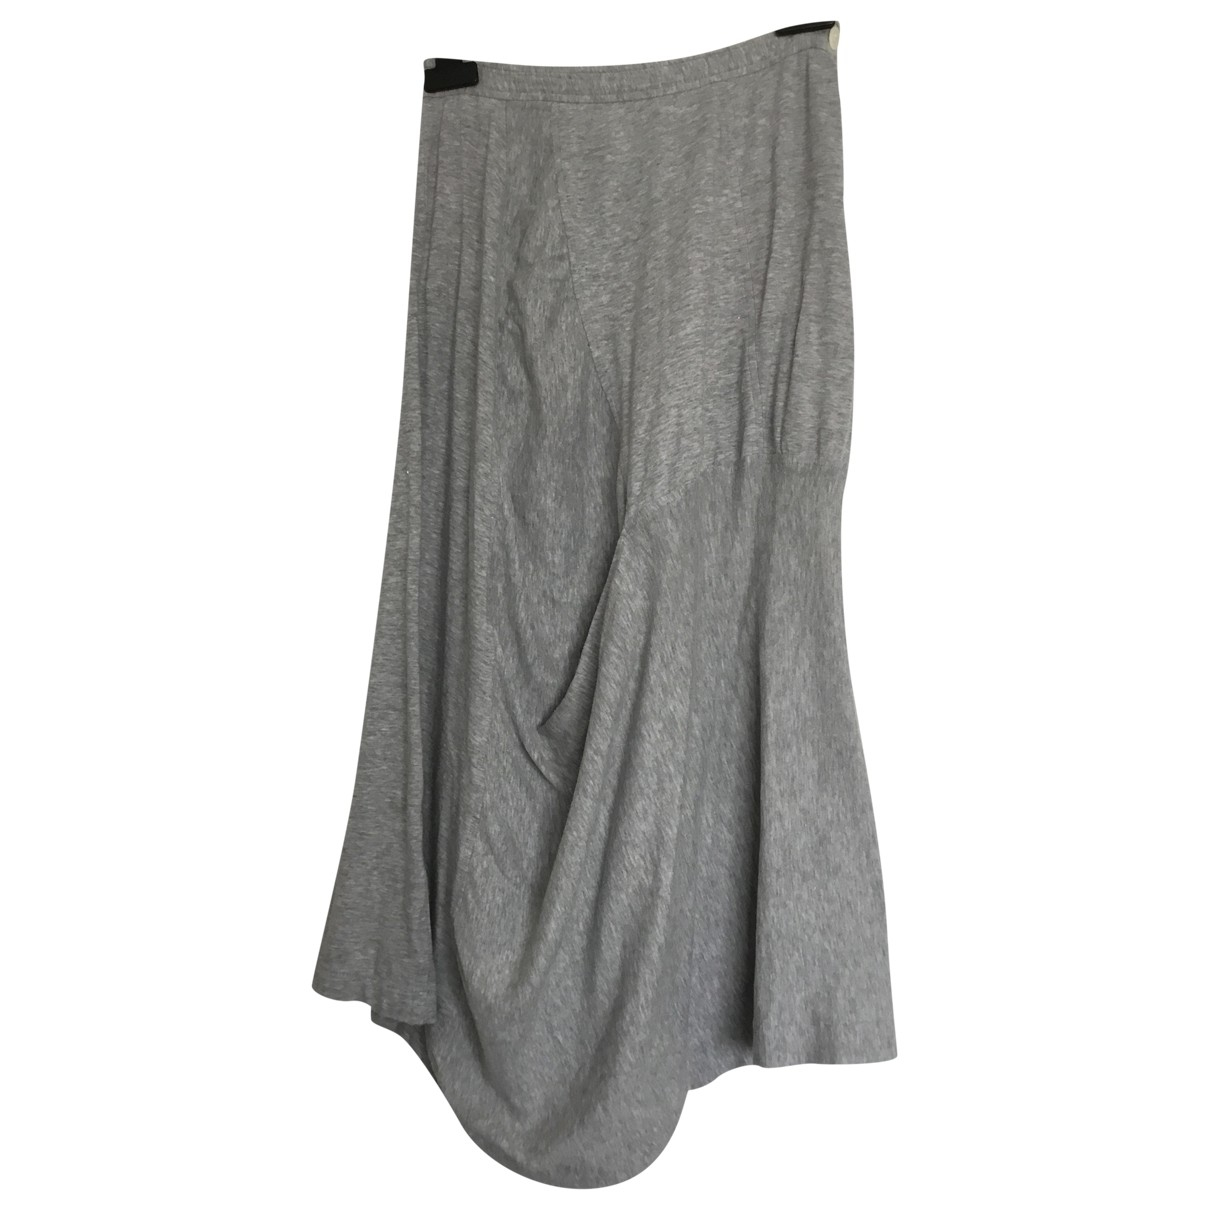 Comme Des Garcons \N Grey Cotton skirt for Women M International